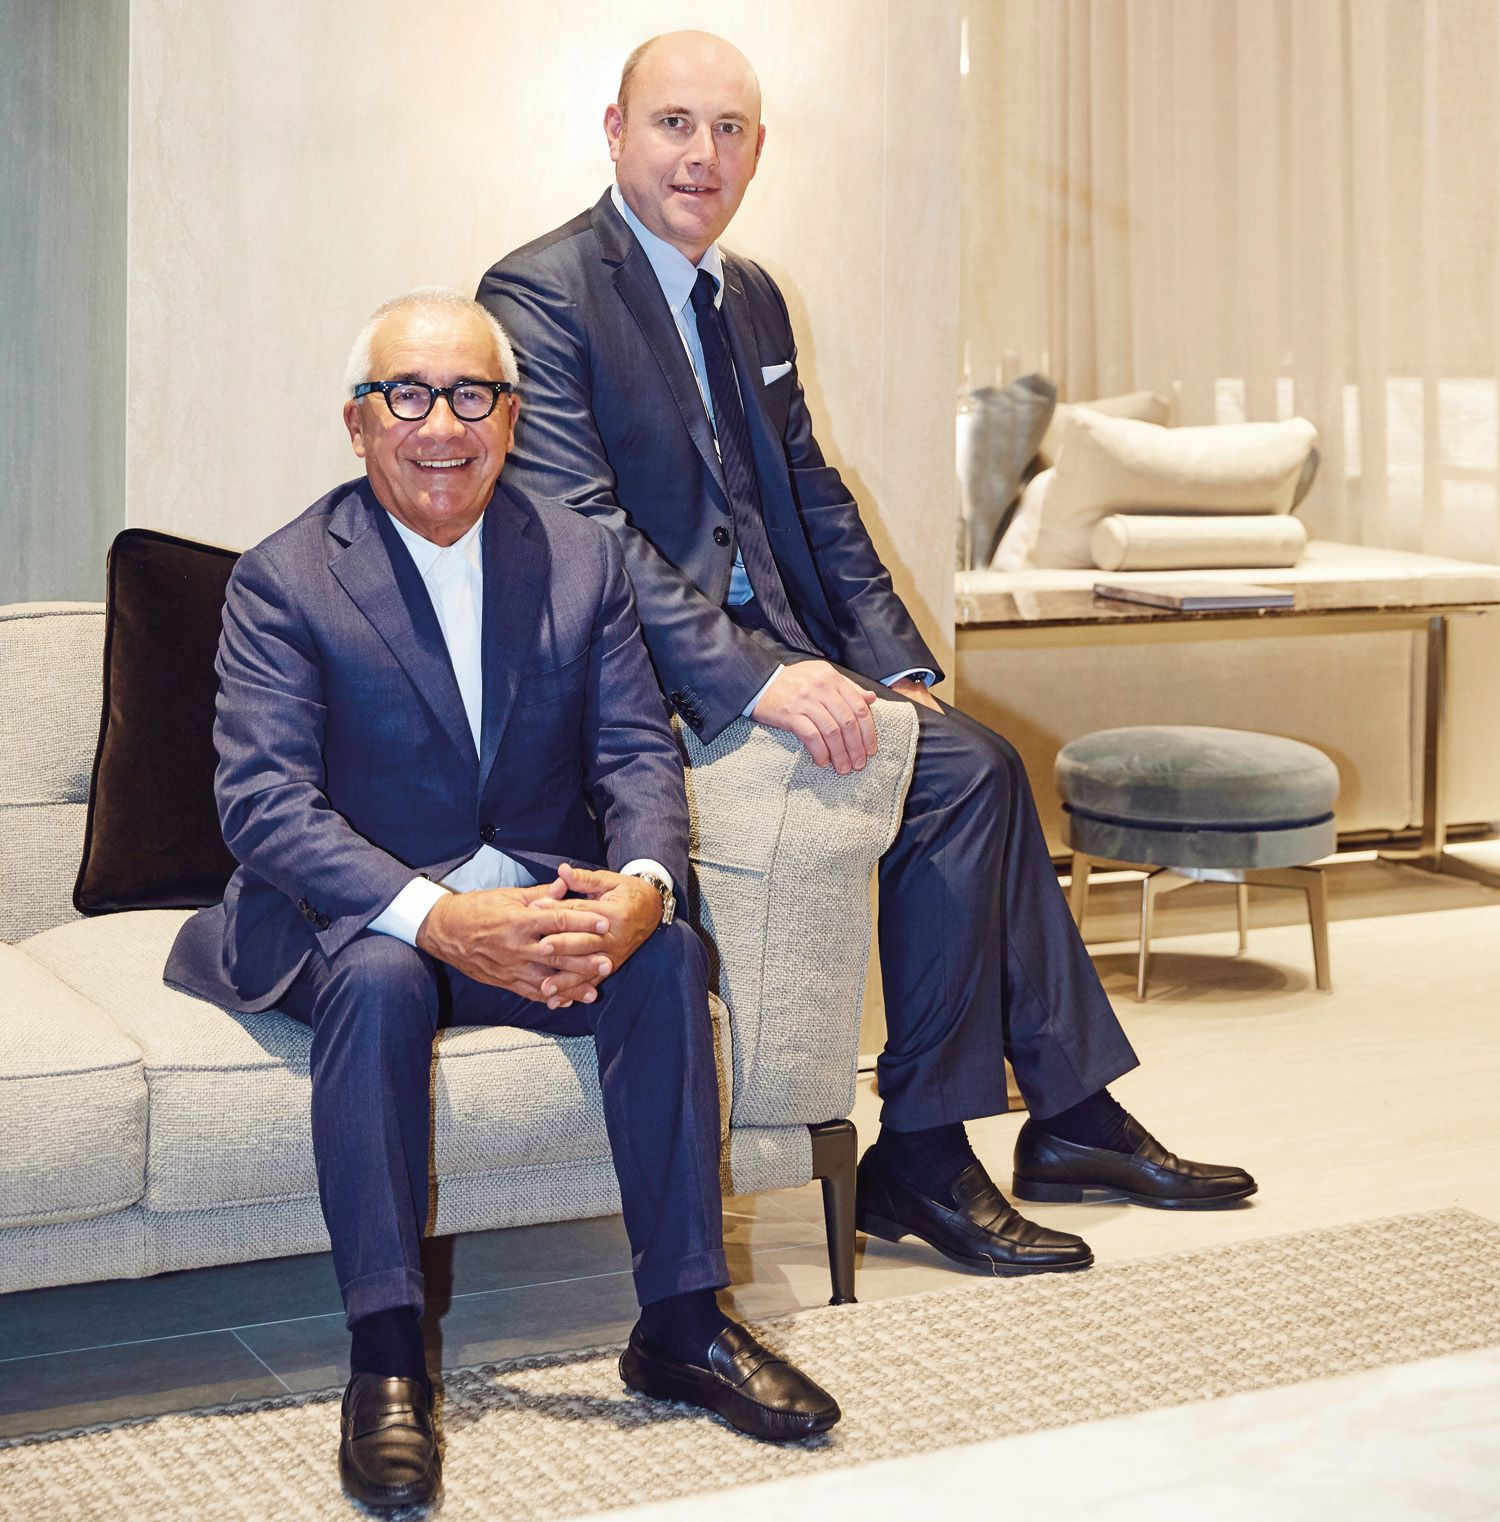 Pietro and Giuliano Galimberti of family-run Italian furniture brand Flexform